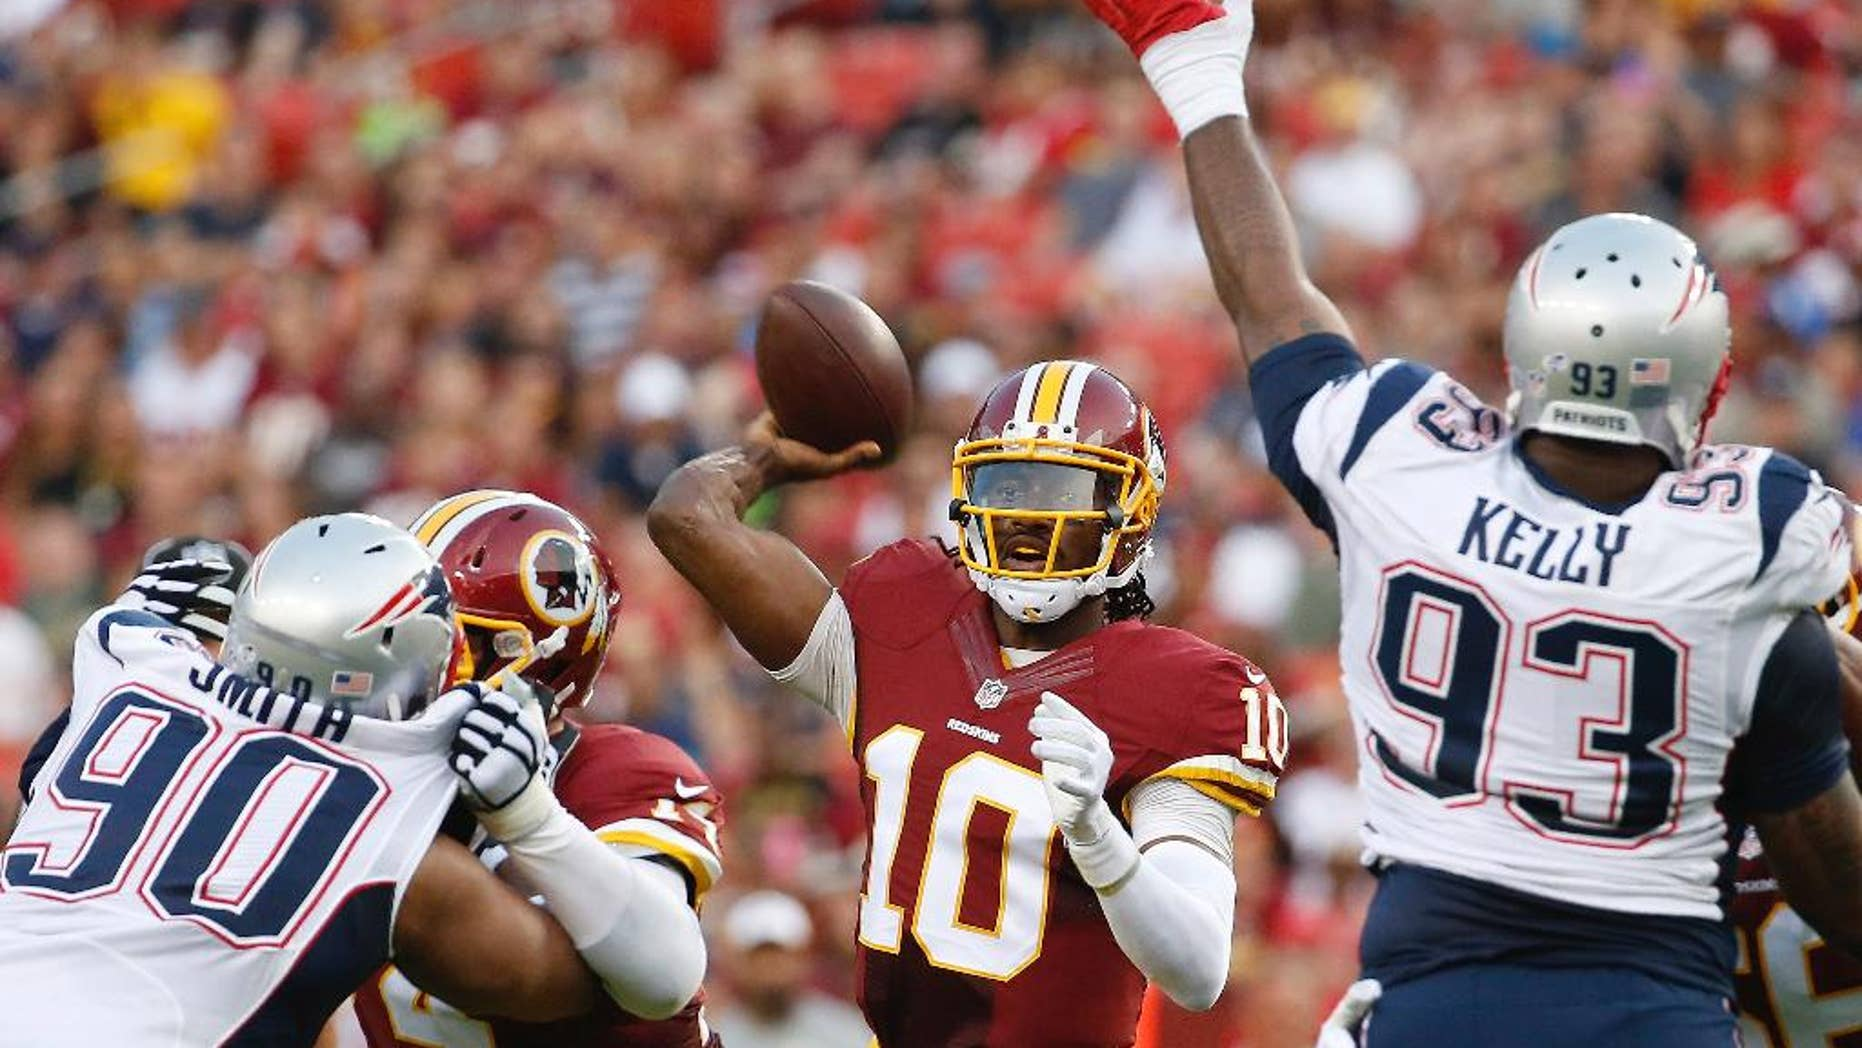 Washington Redskins quarterback Robert Griffin III passes between New England Patriots defensive end Will Smith (90) and defensive tackle Tommy Kelly (93) during the first half of an NFL football preseason game in Landover, Md., Thursday, Aug. 7, 2014. (AP Photo/Alex Brandon)